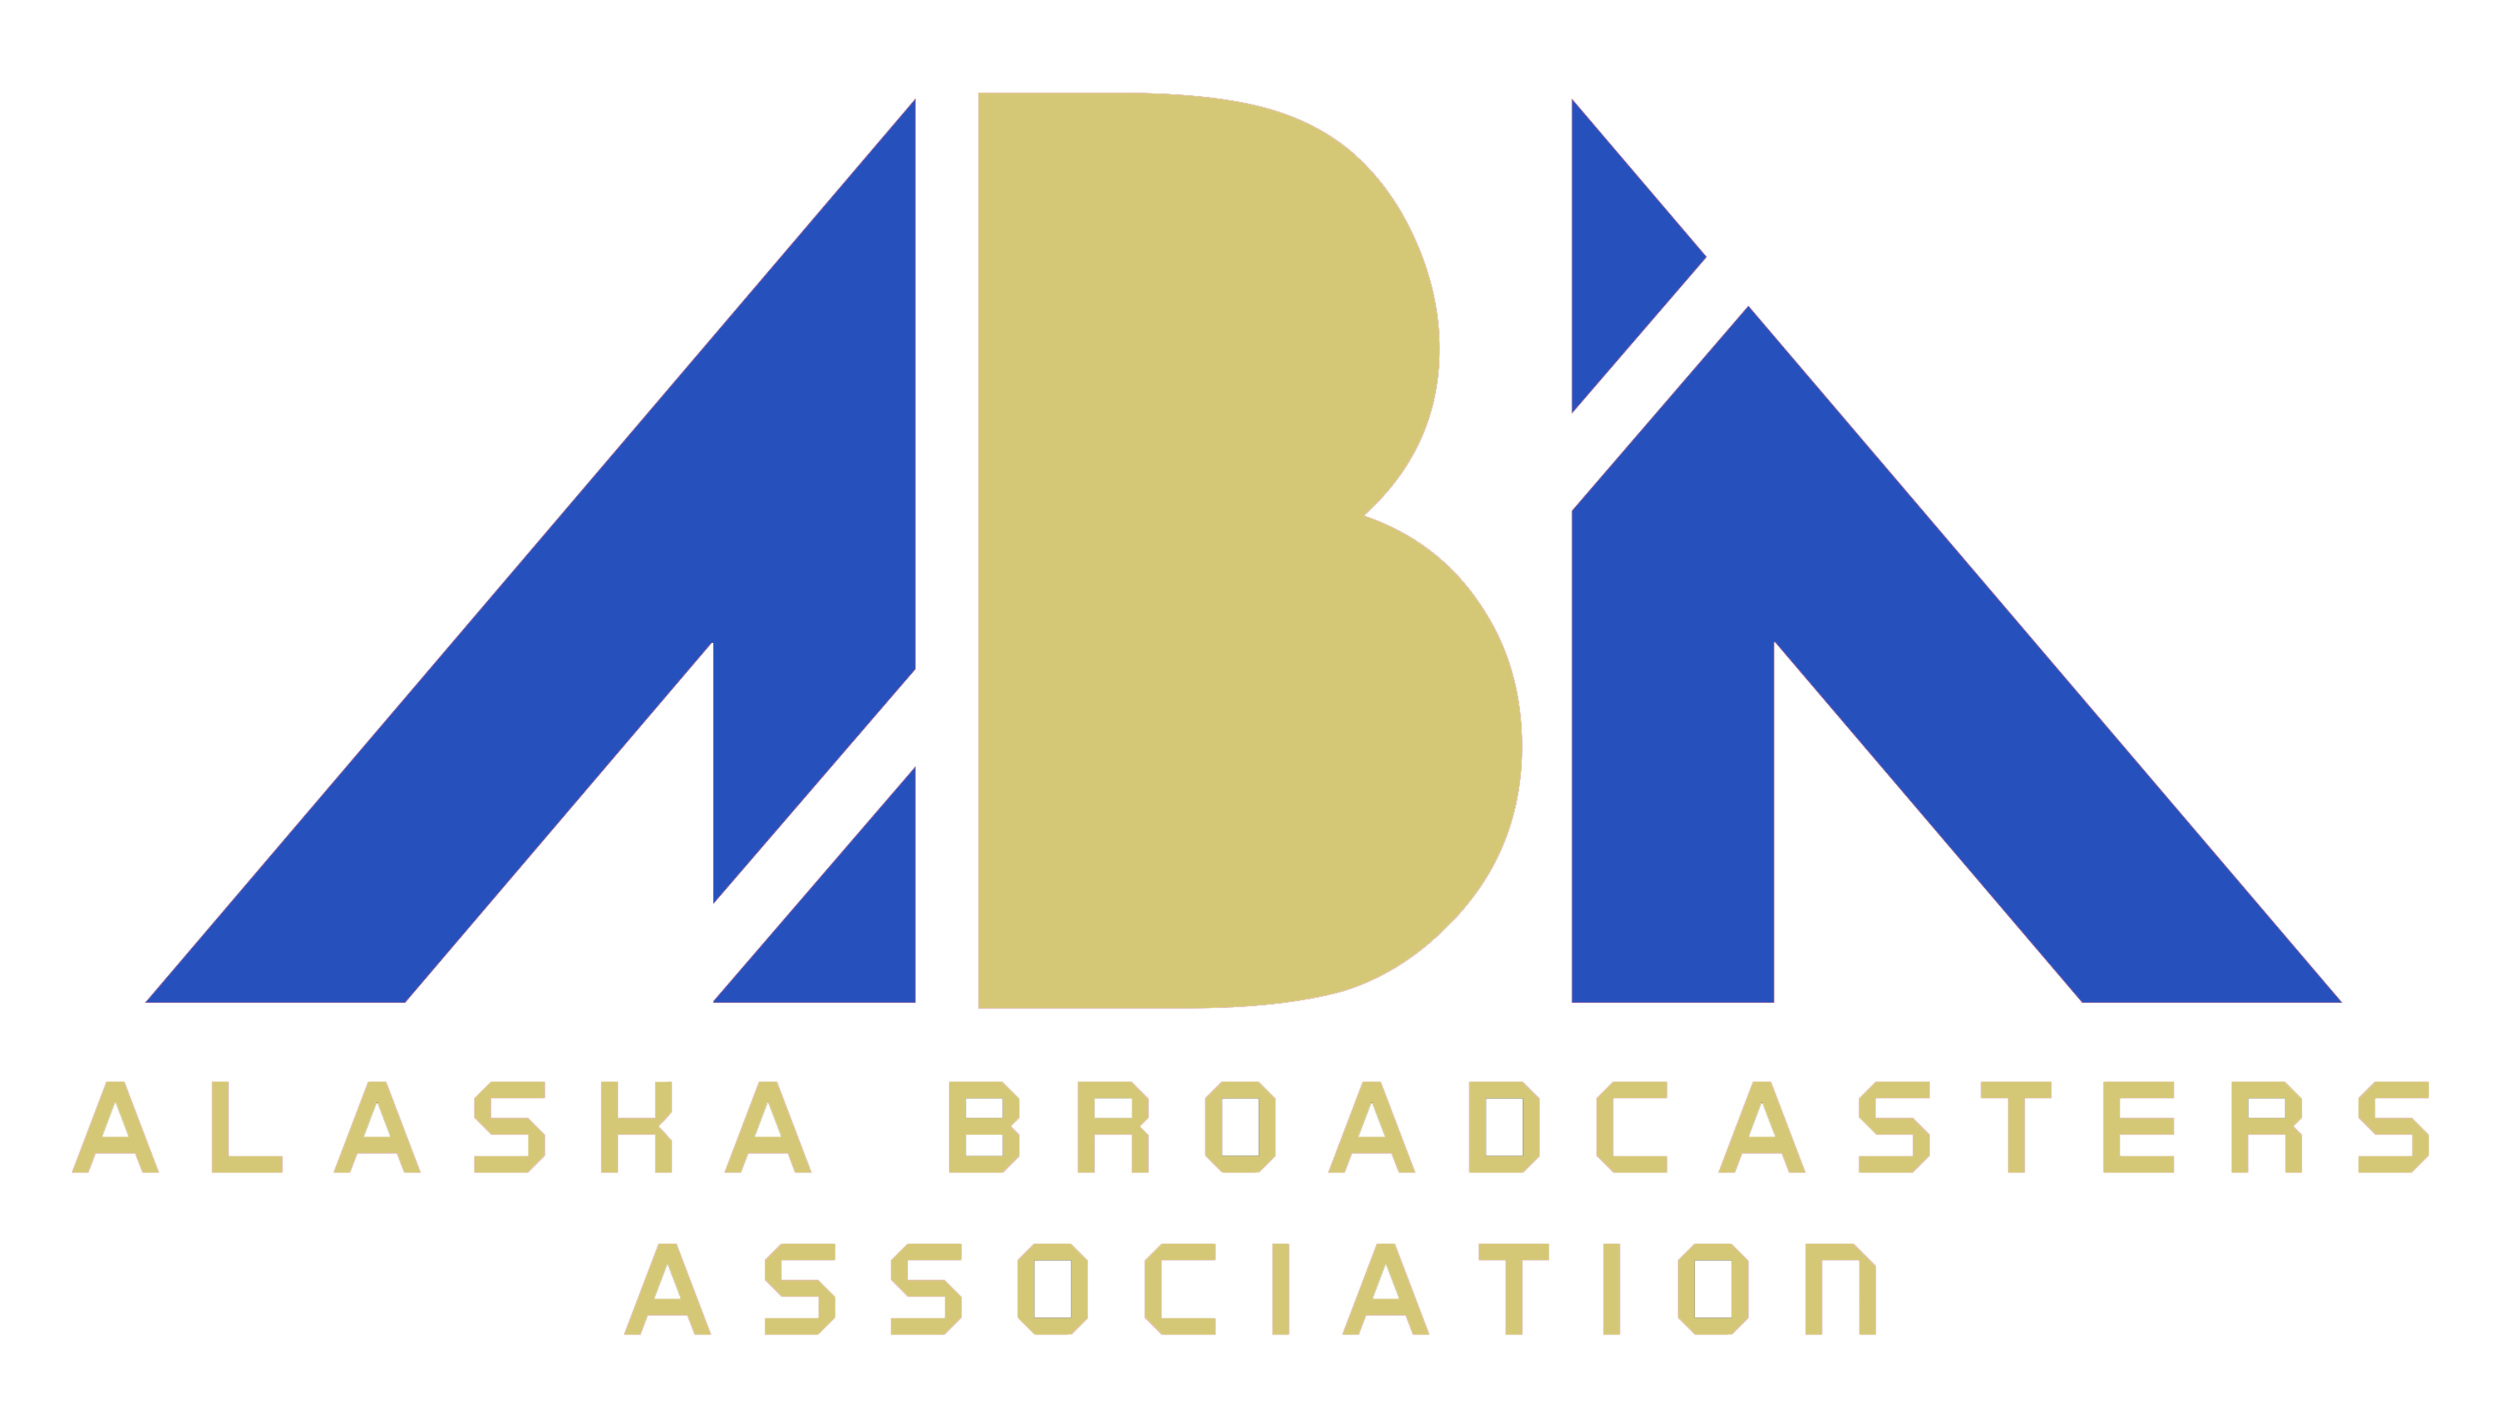 aba final logo (inverted, transparent BG).png